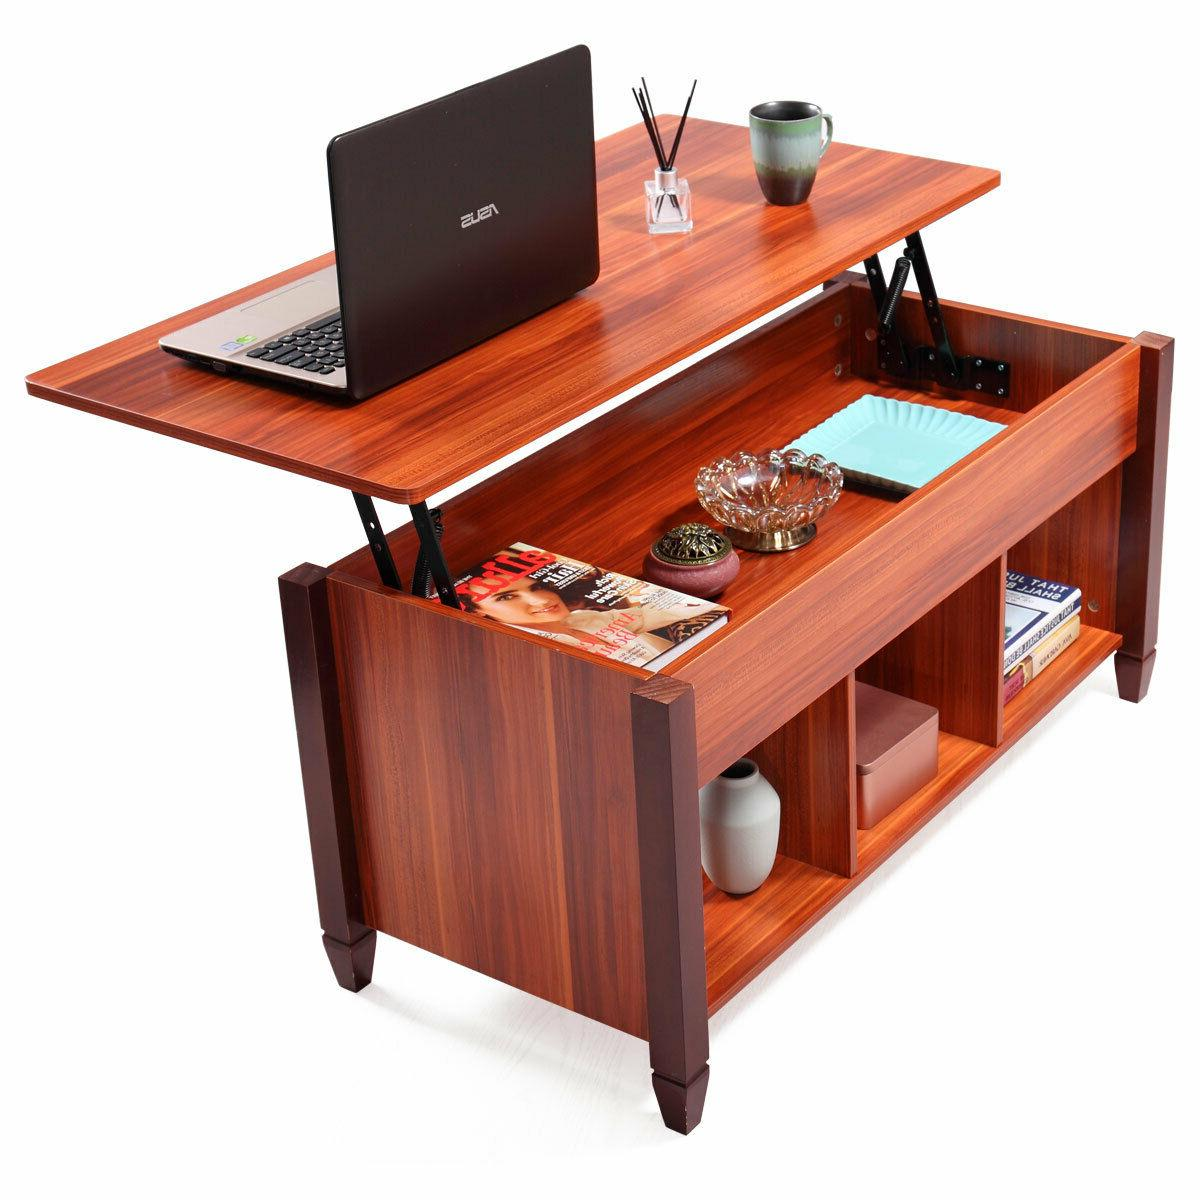 lift top coffee table wooden with hidden